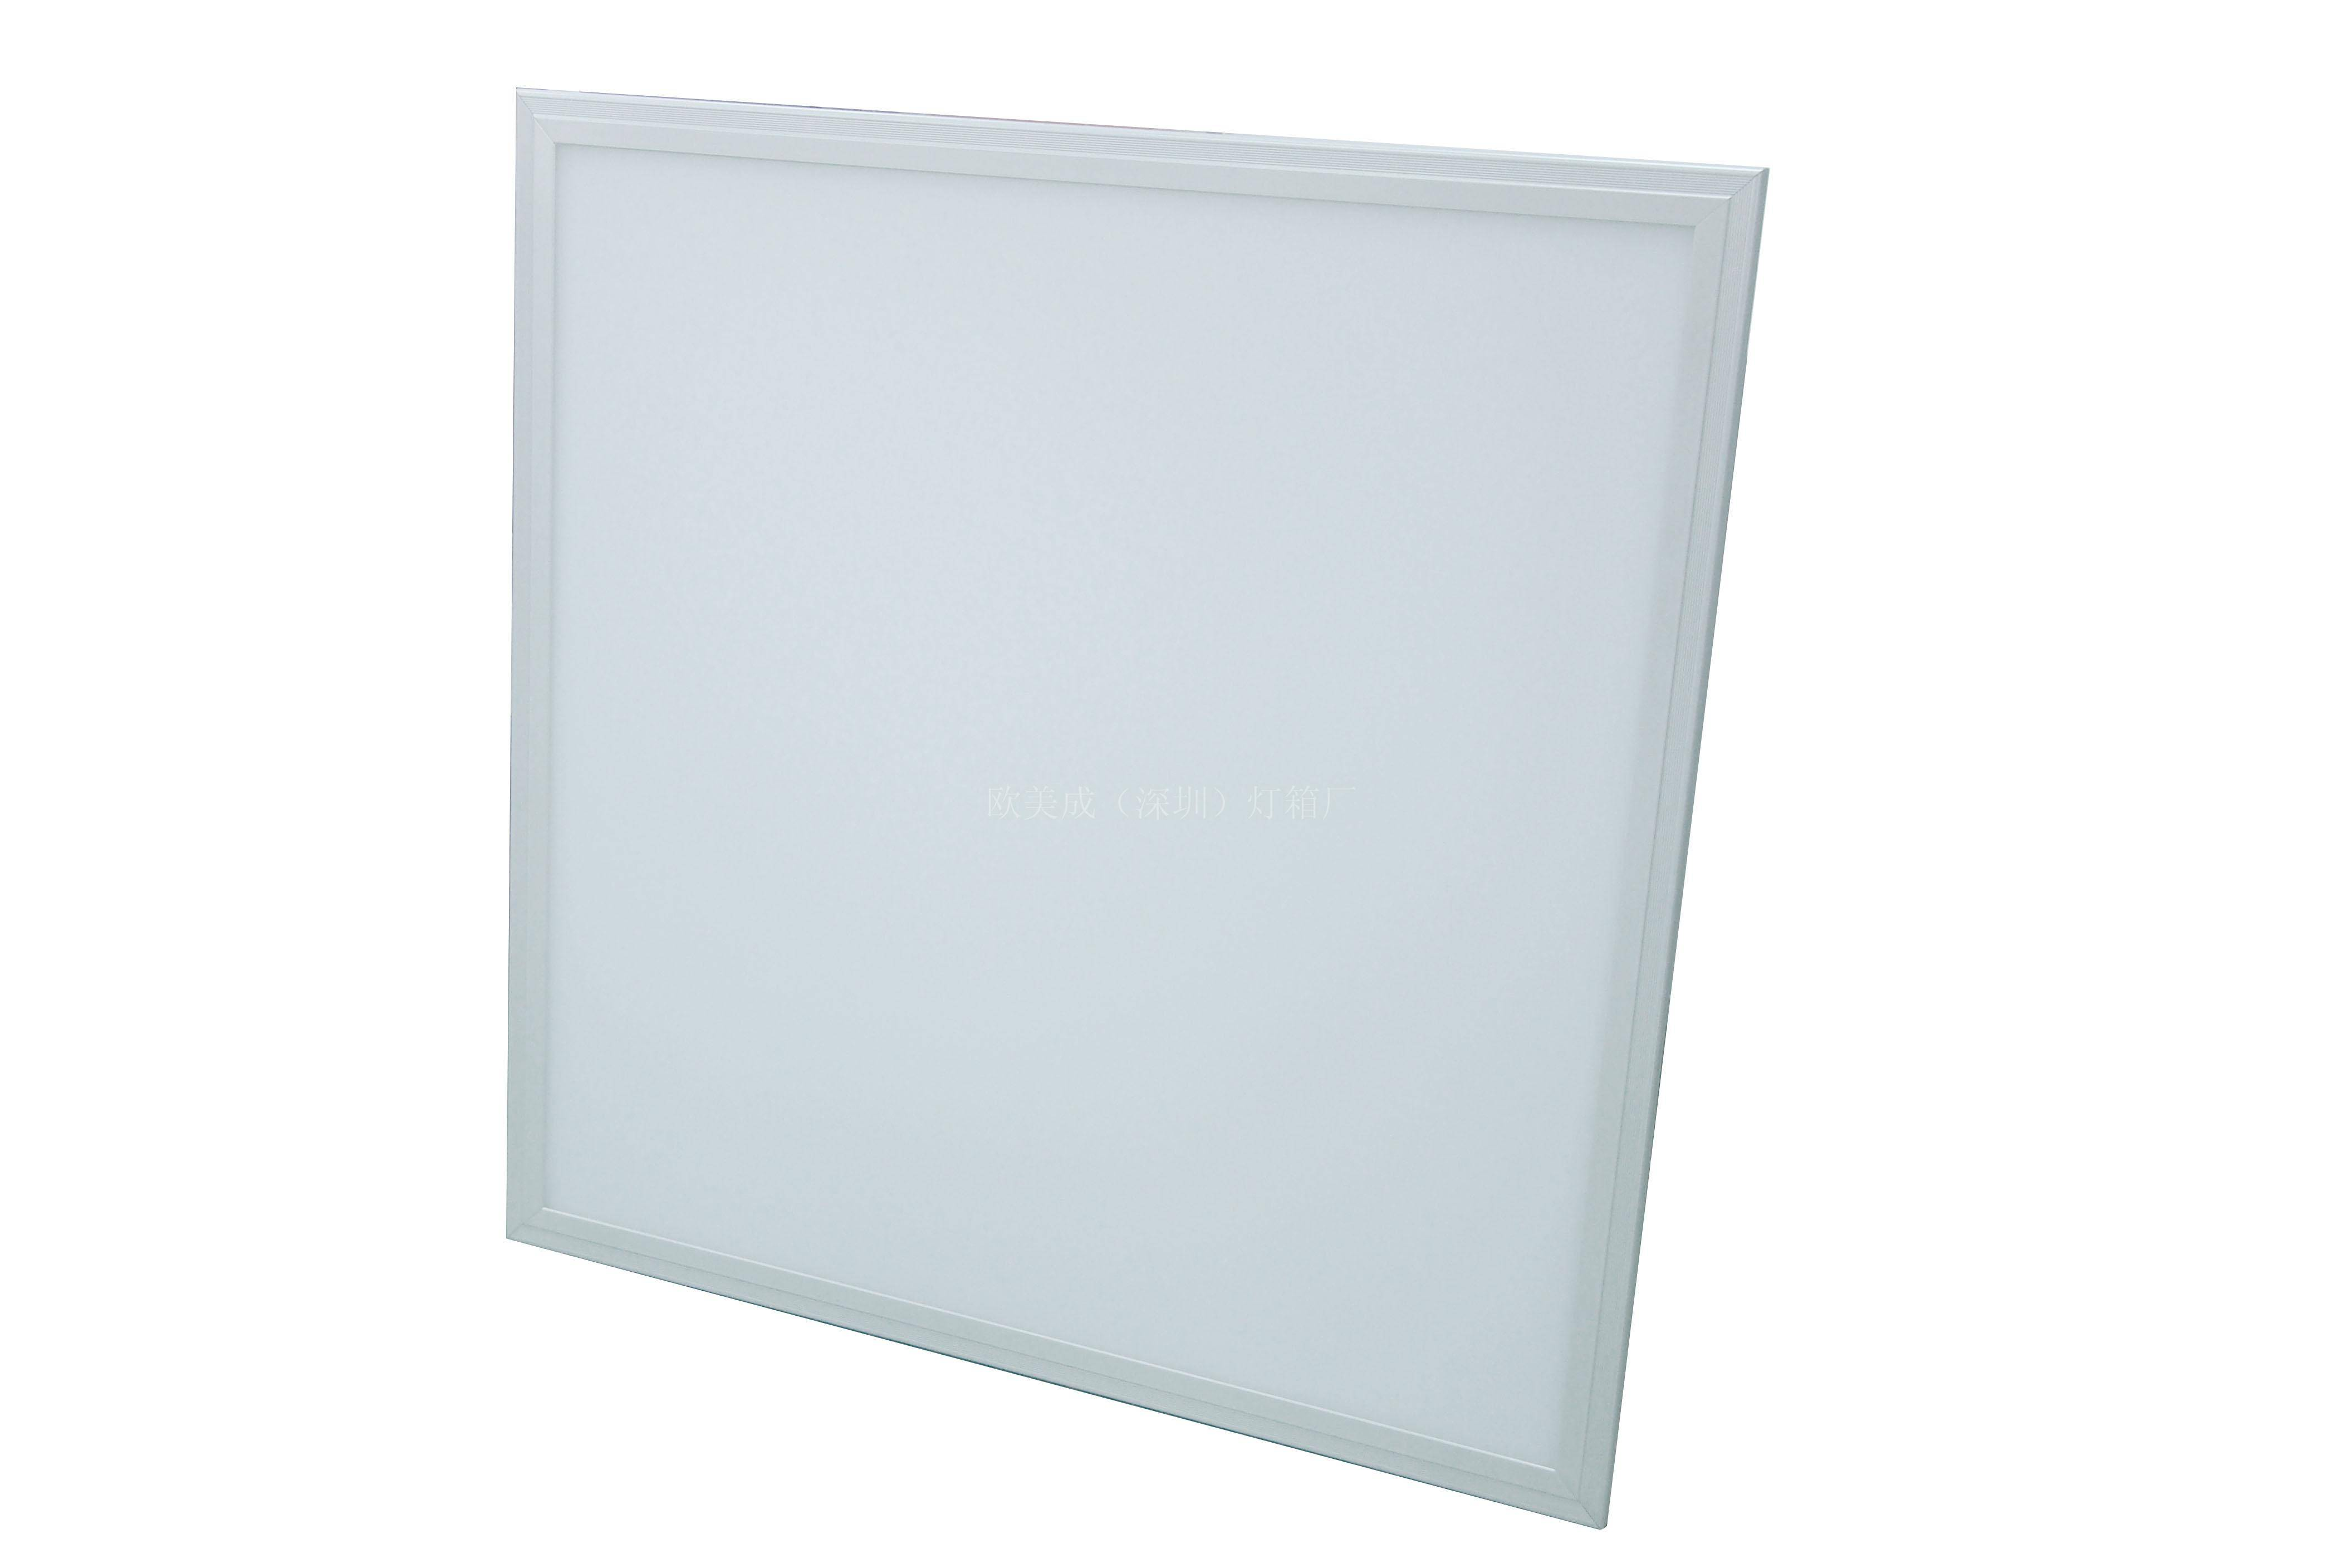 600*600mm 120lm/w 40w high efficiency LED panel light